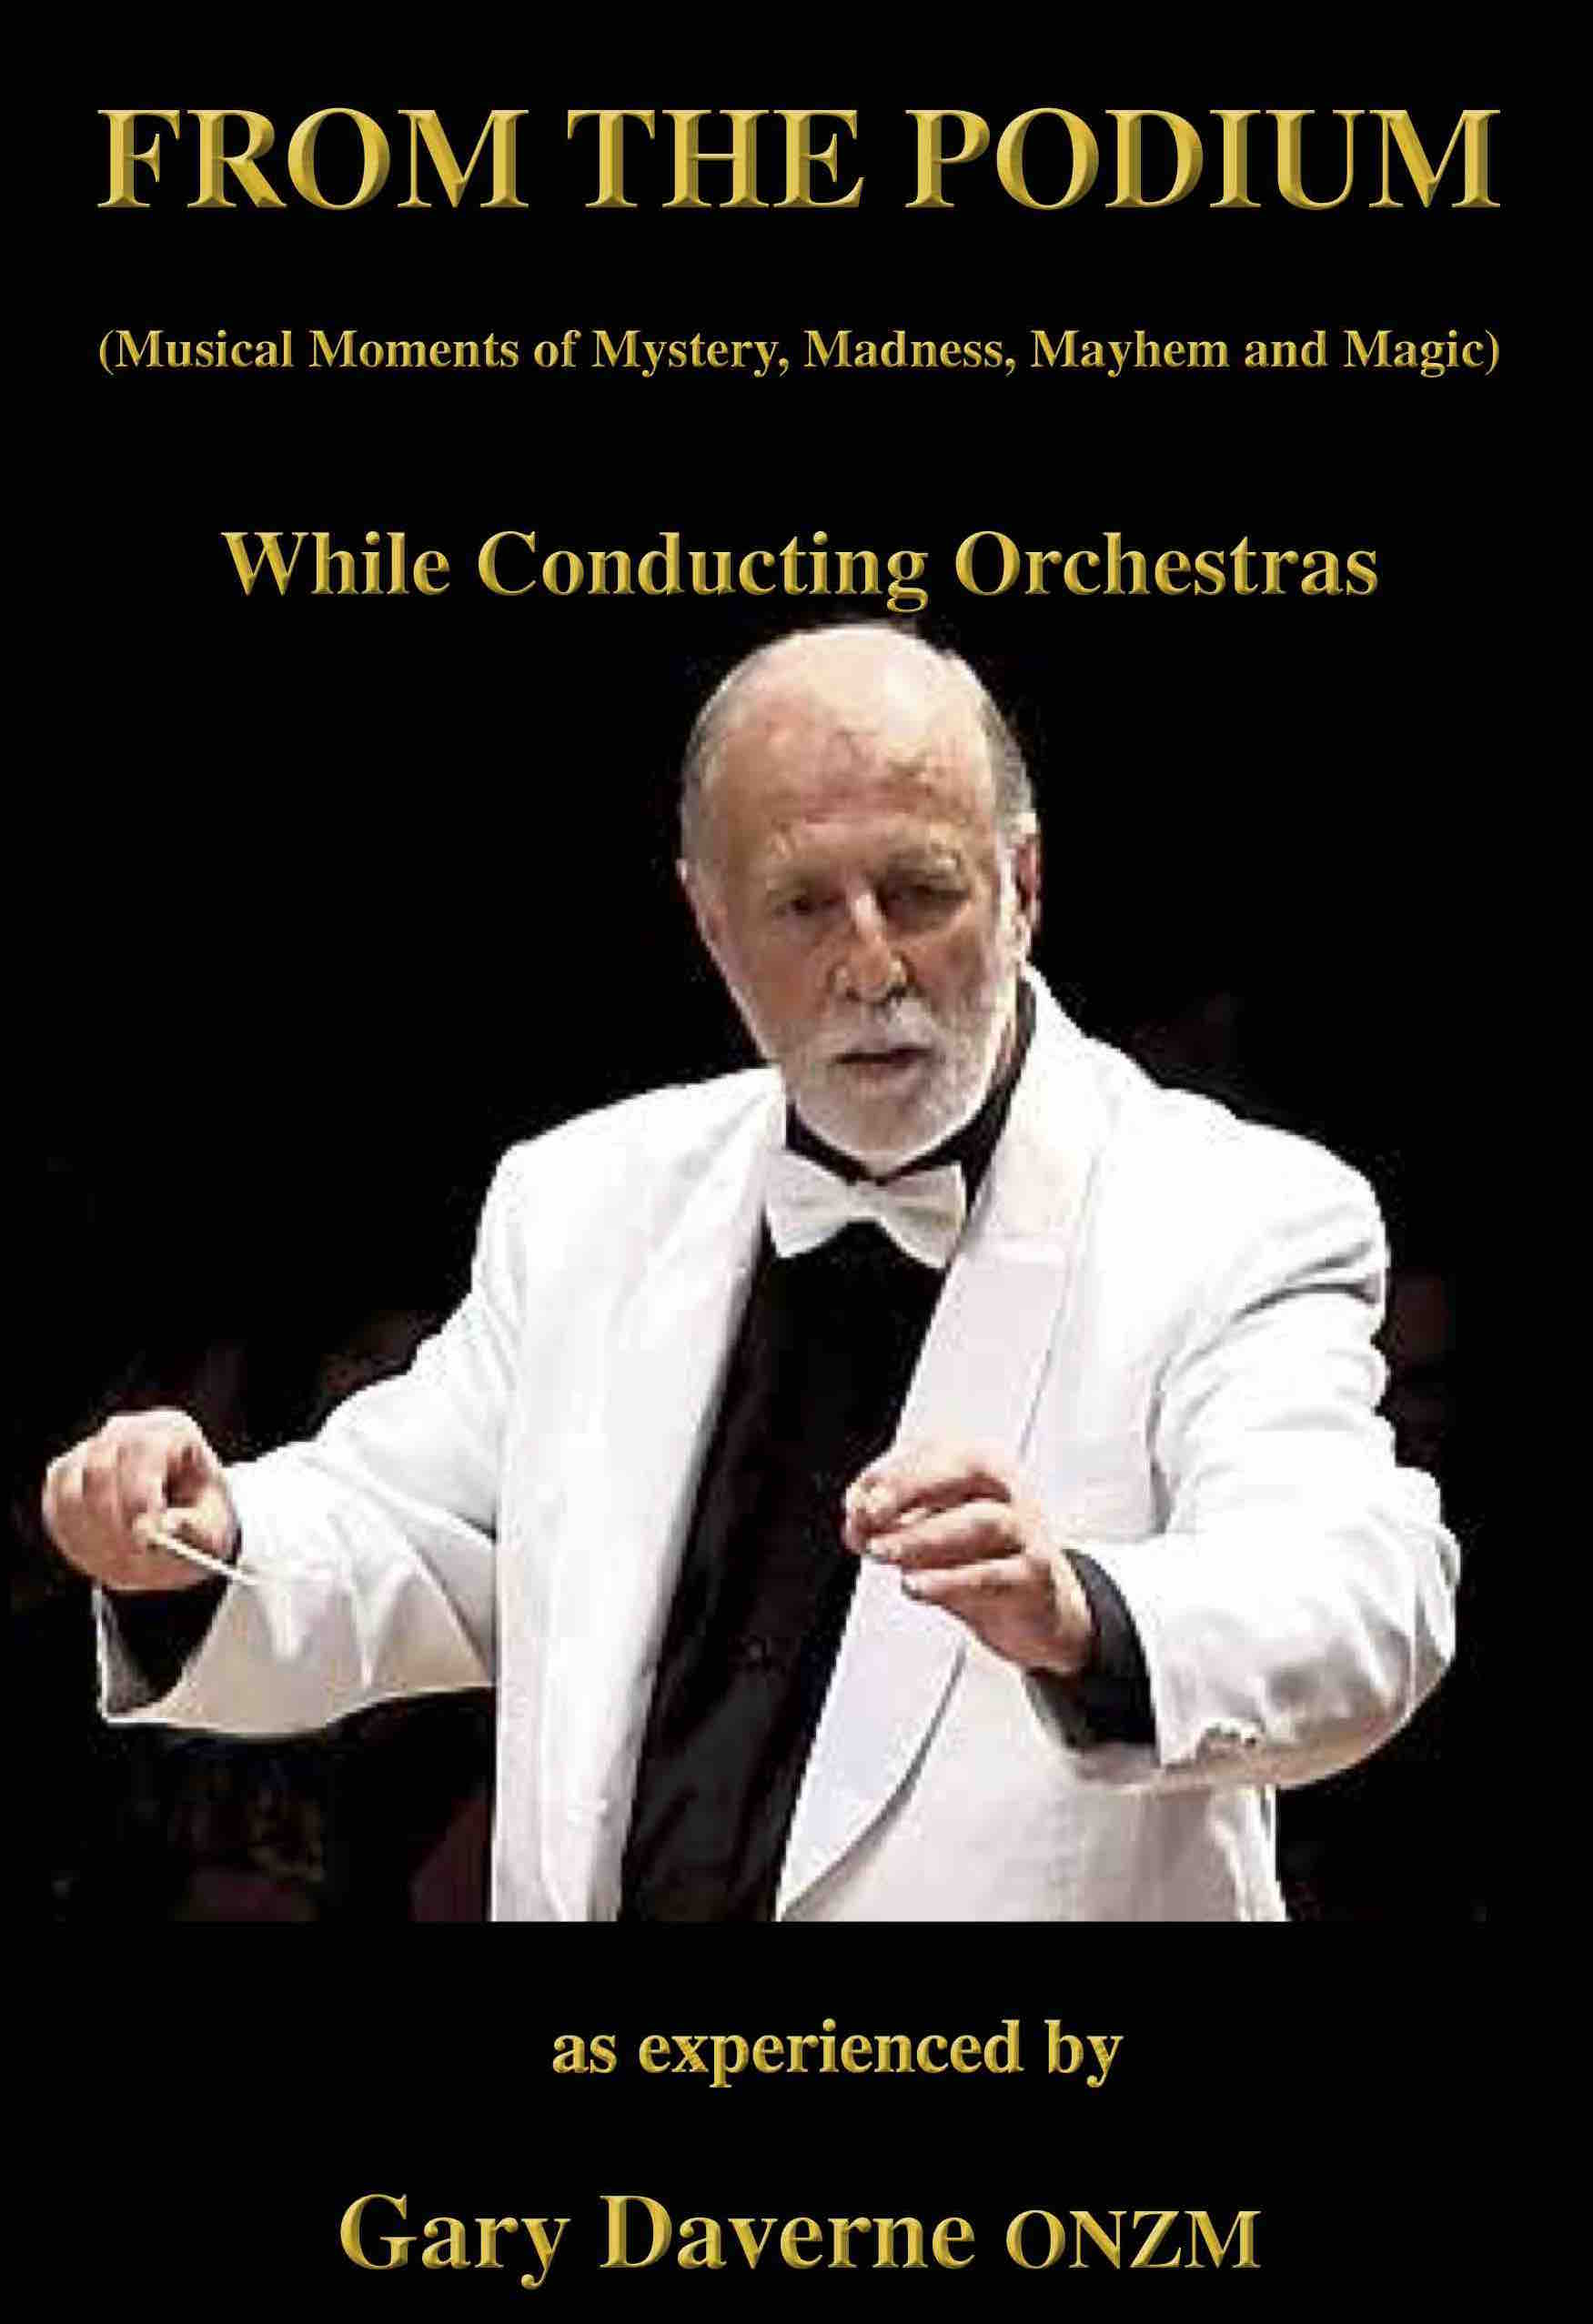 From the Podium (Musical Moments of Mystery, Madness, Mayhem and Magic) While Conducting Orchestras